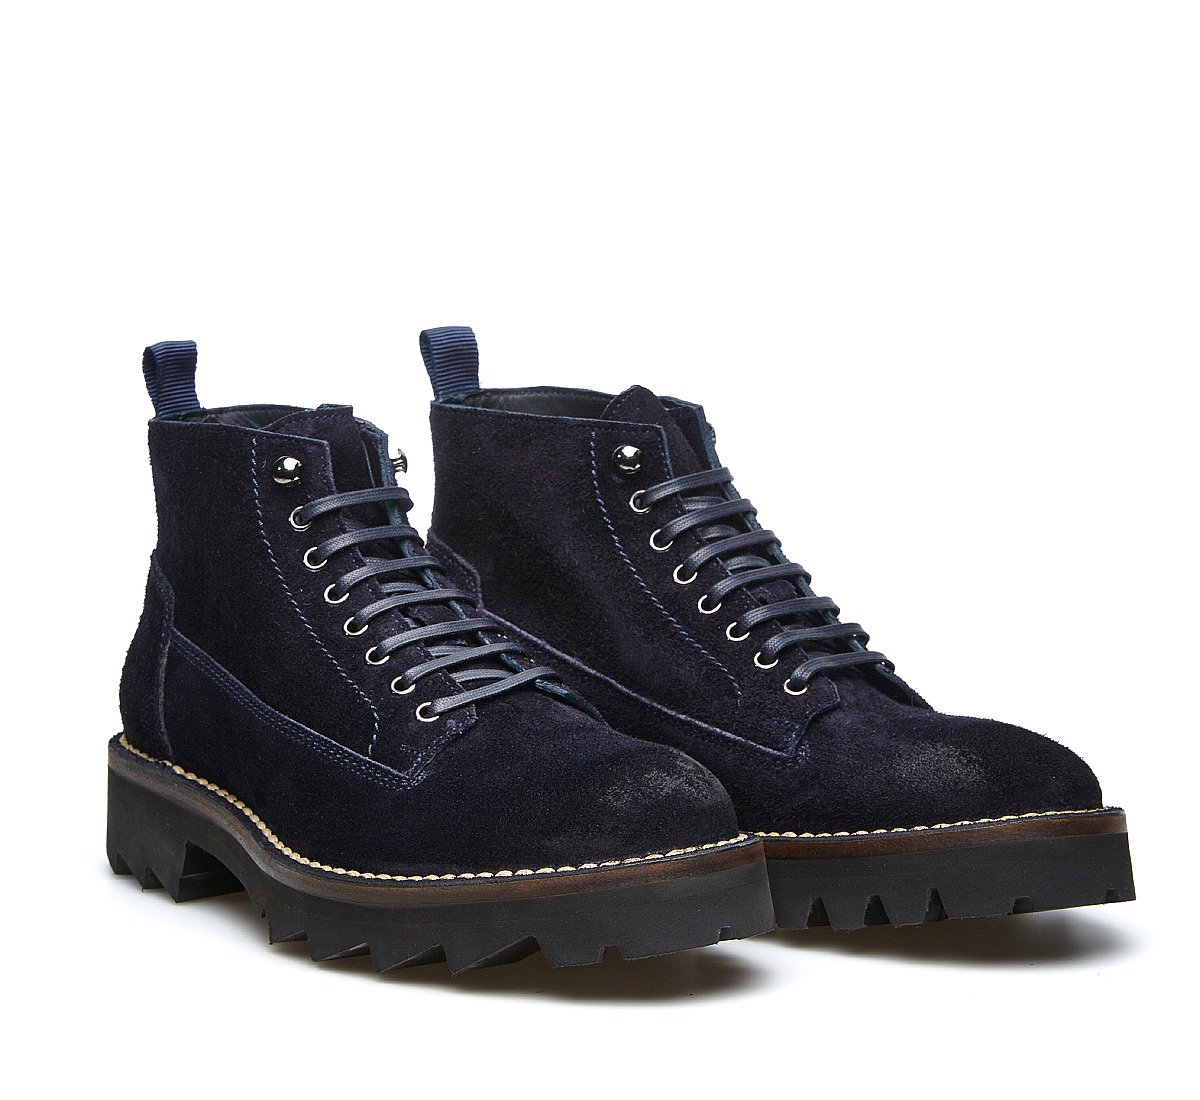 Barracuda crust ankle boots